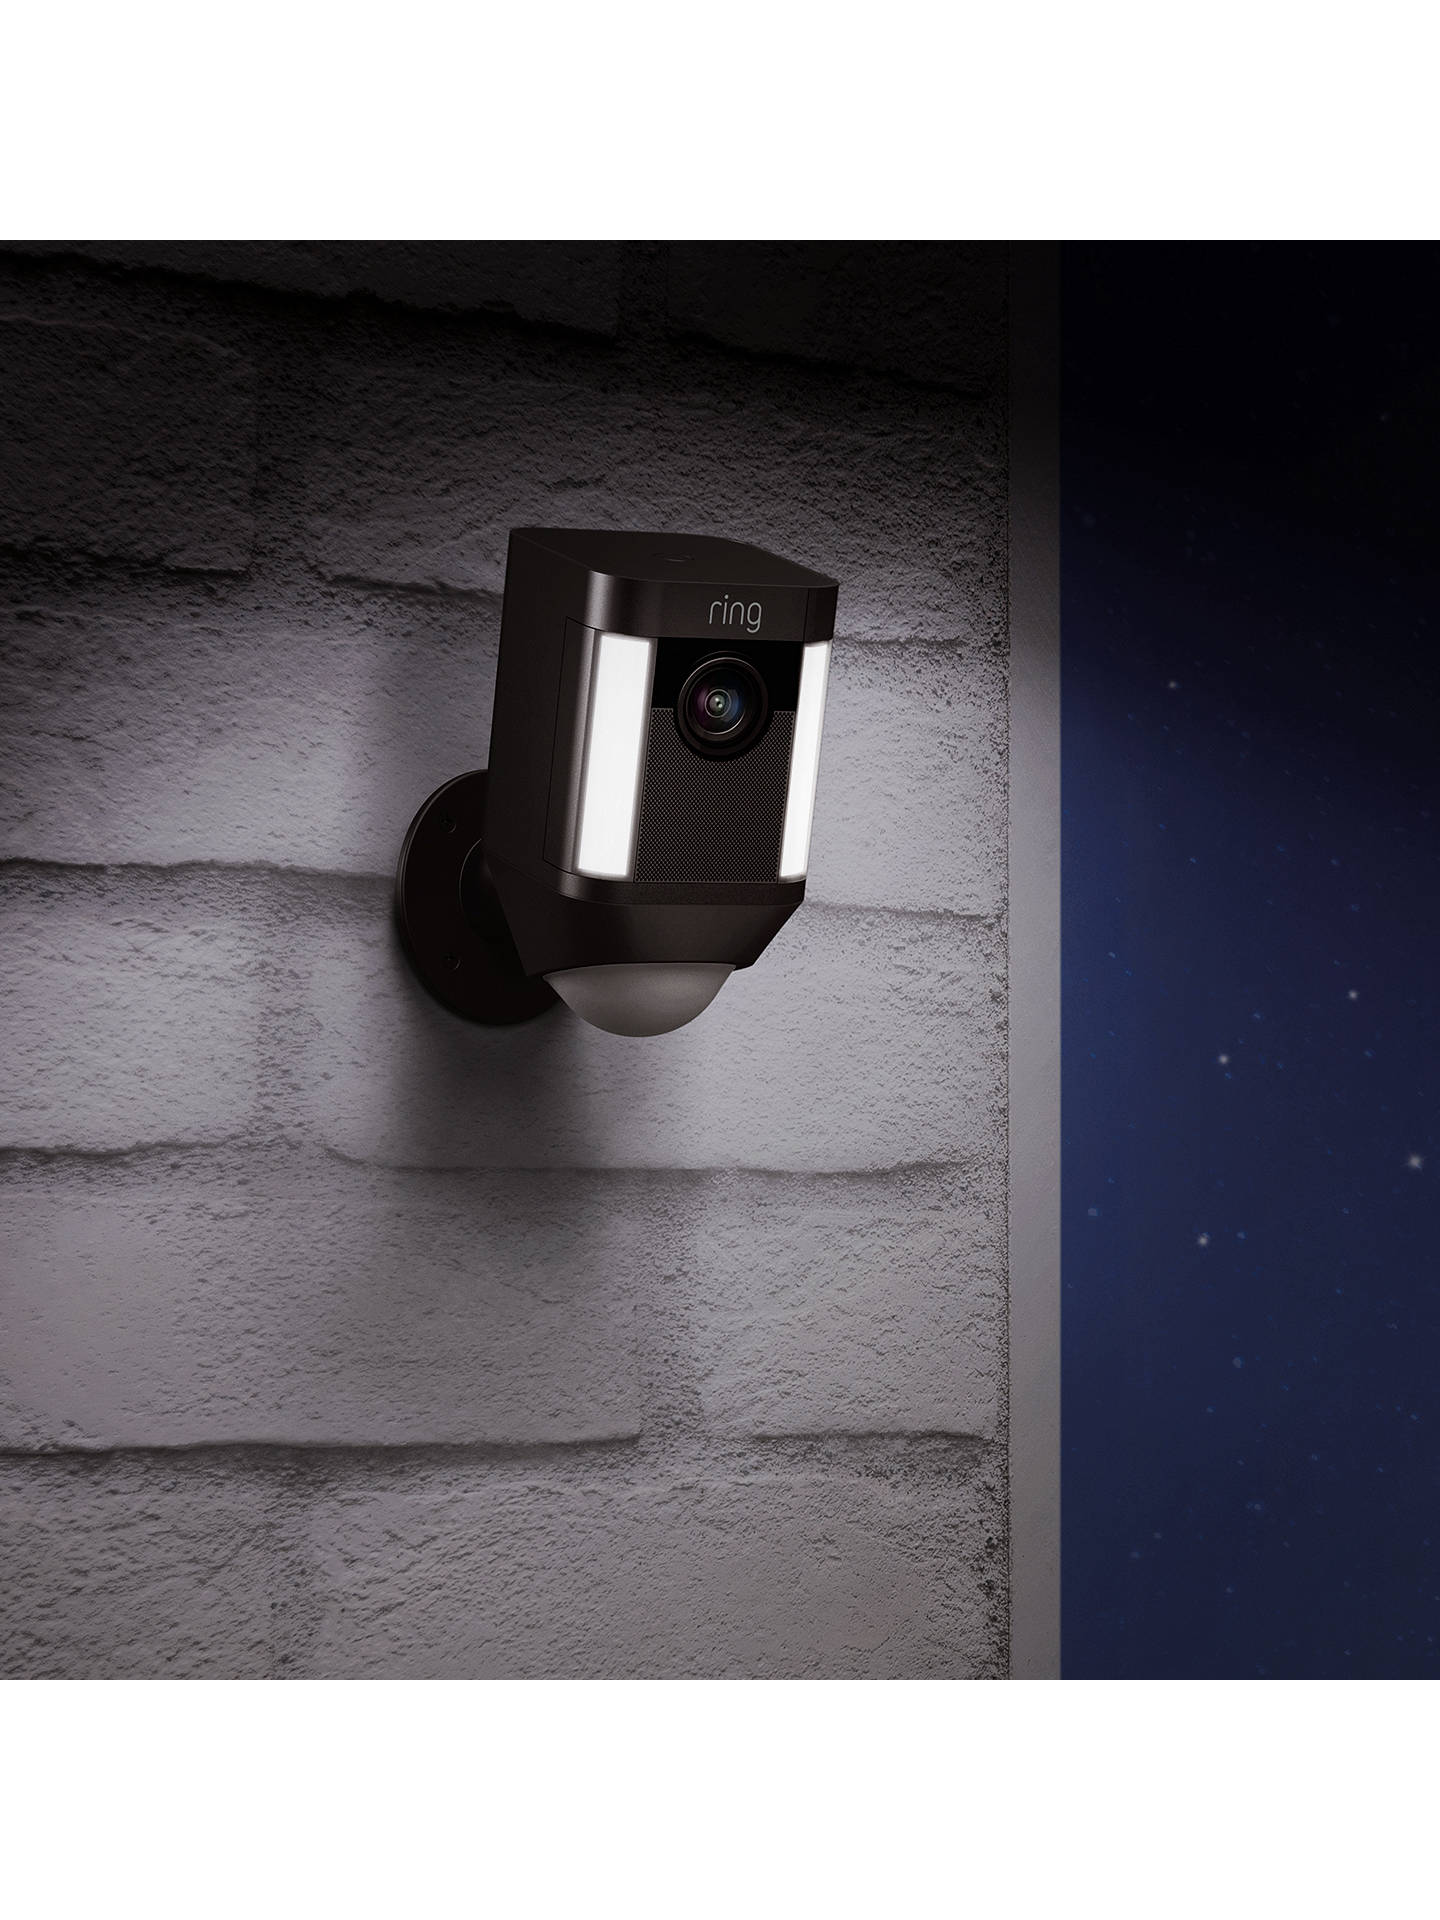 BuyRing Spotlight Cam Smart Security Camera with Built-in Wi-Fi & Siren Alarm, Battery Powered, Black Online at johnlewis.com